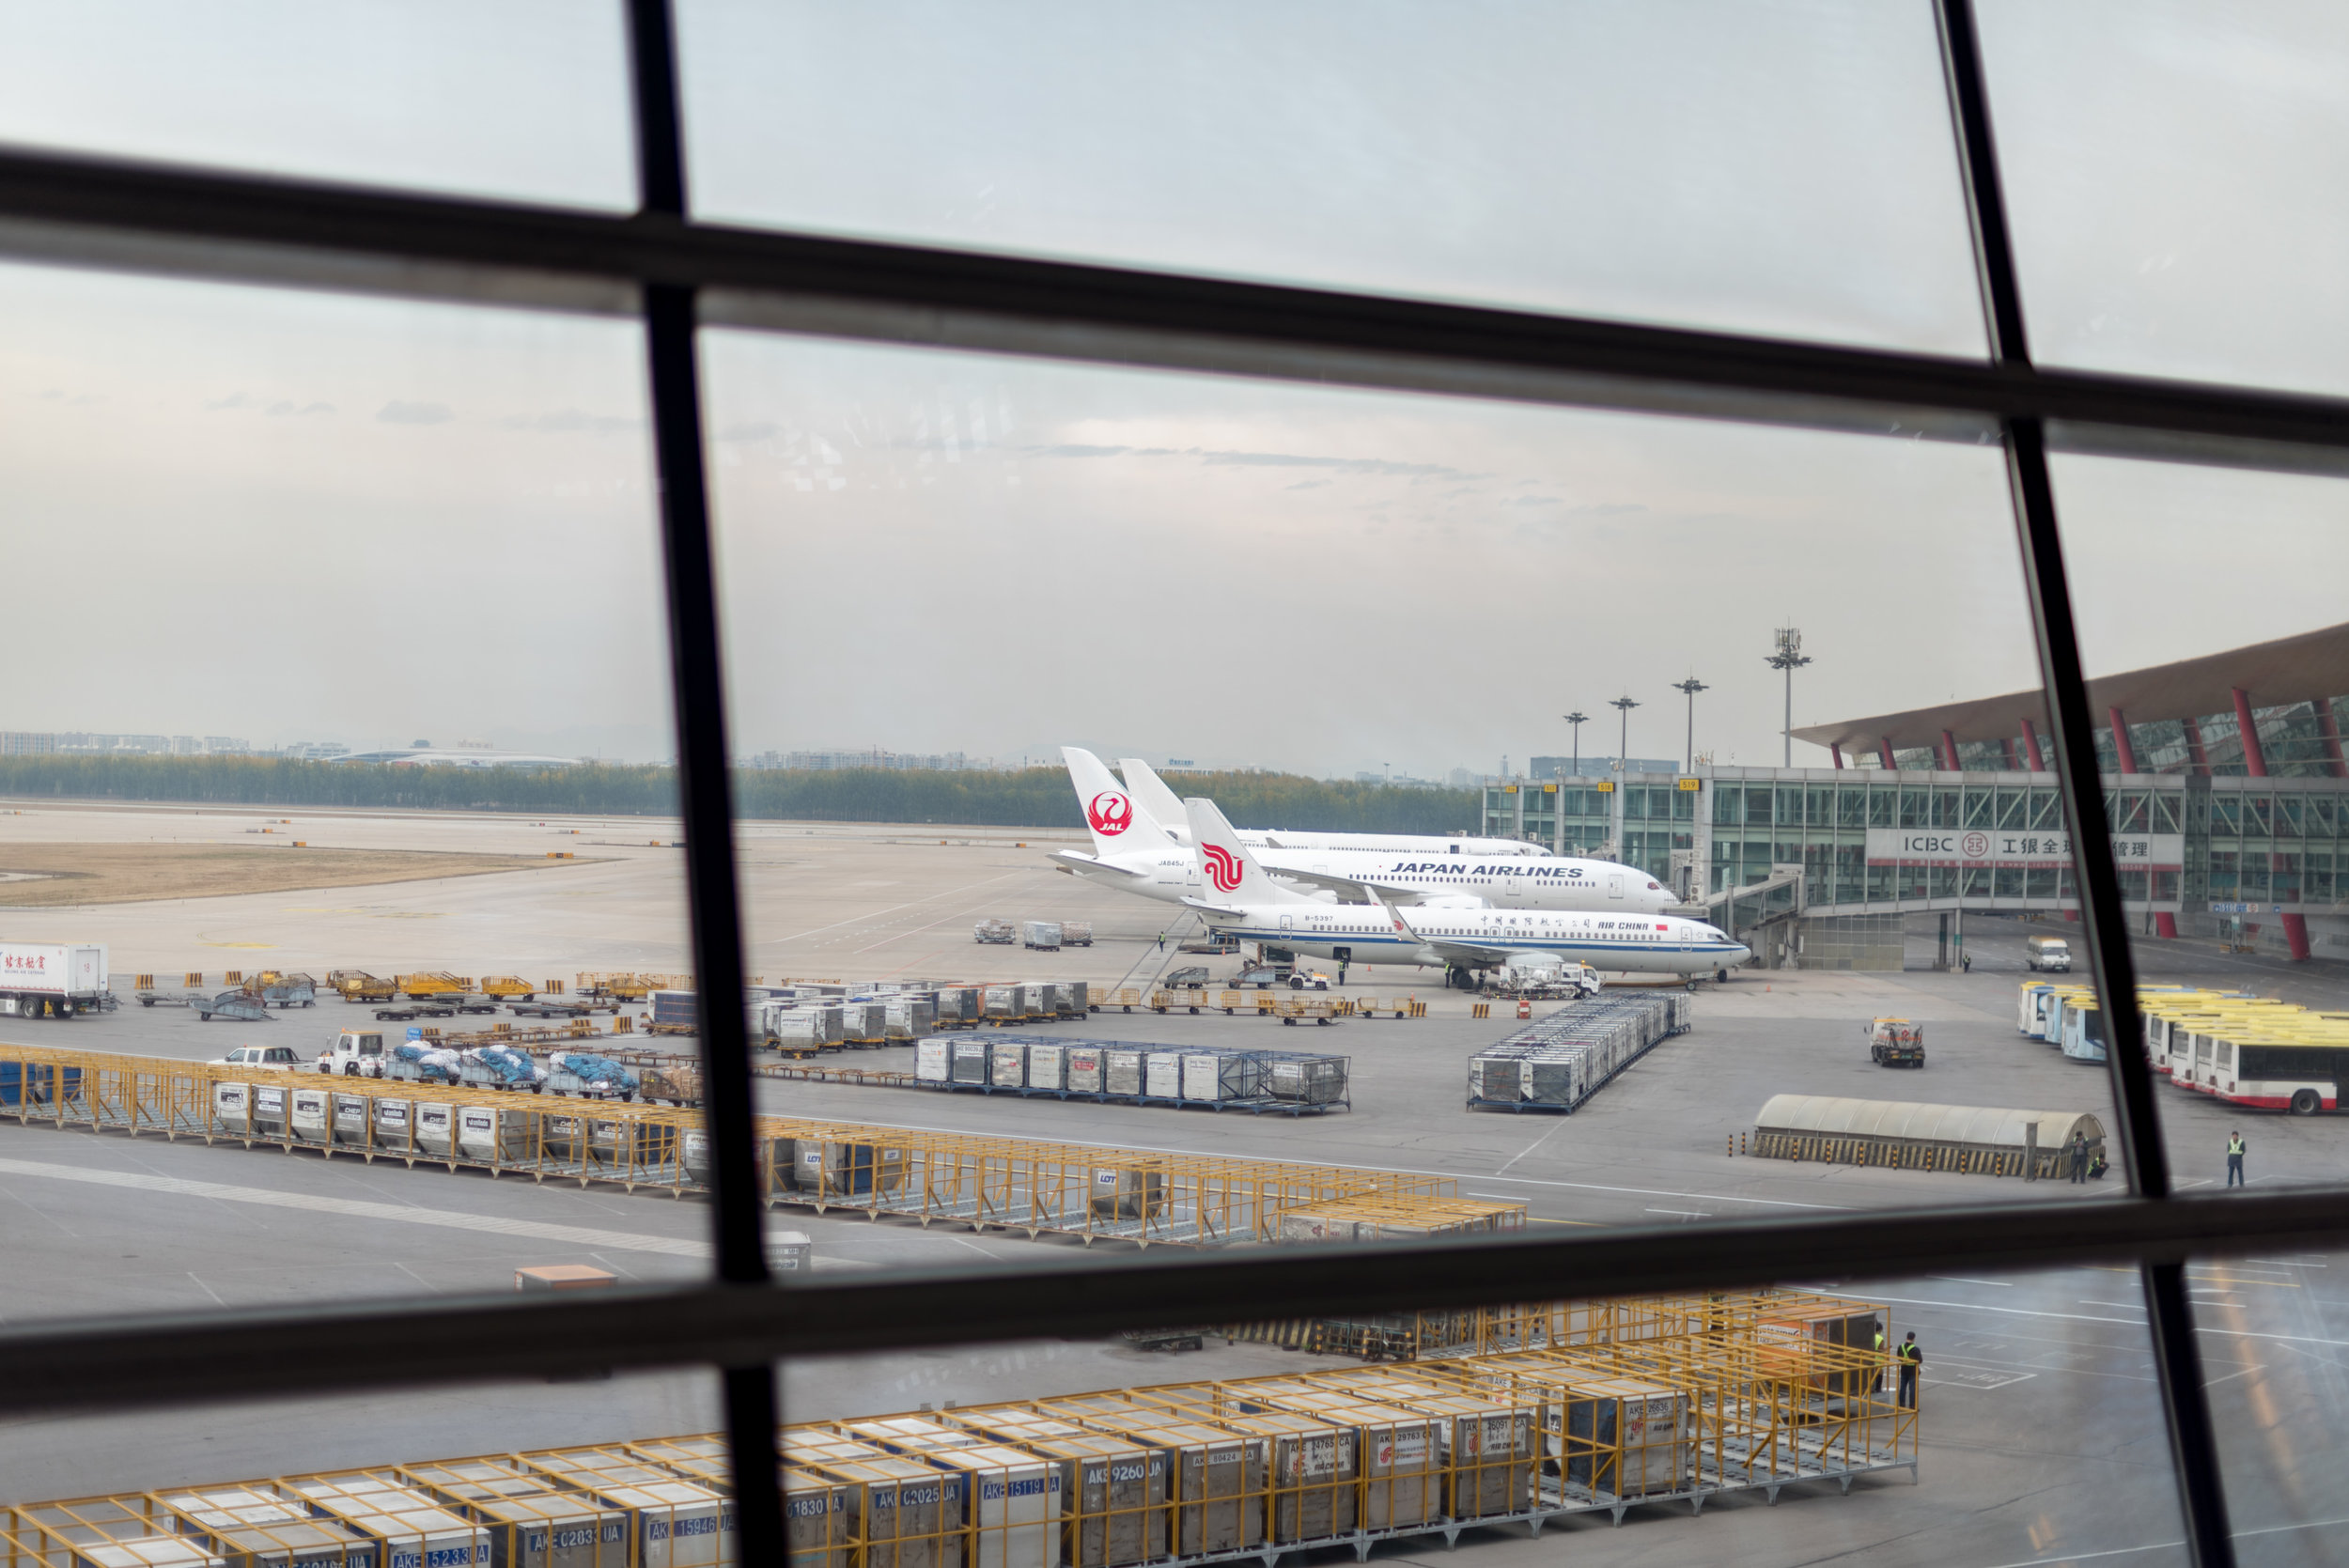 View from the Lounge  Air China First Class Lounge - Beijing Capital International Airport (PEK)